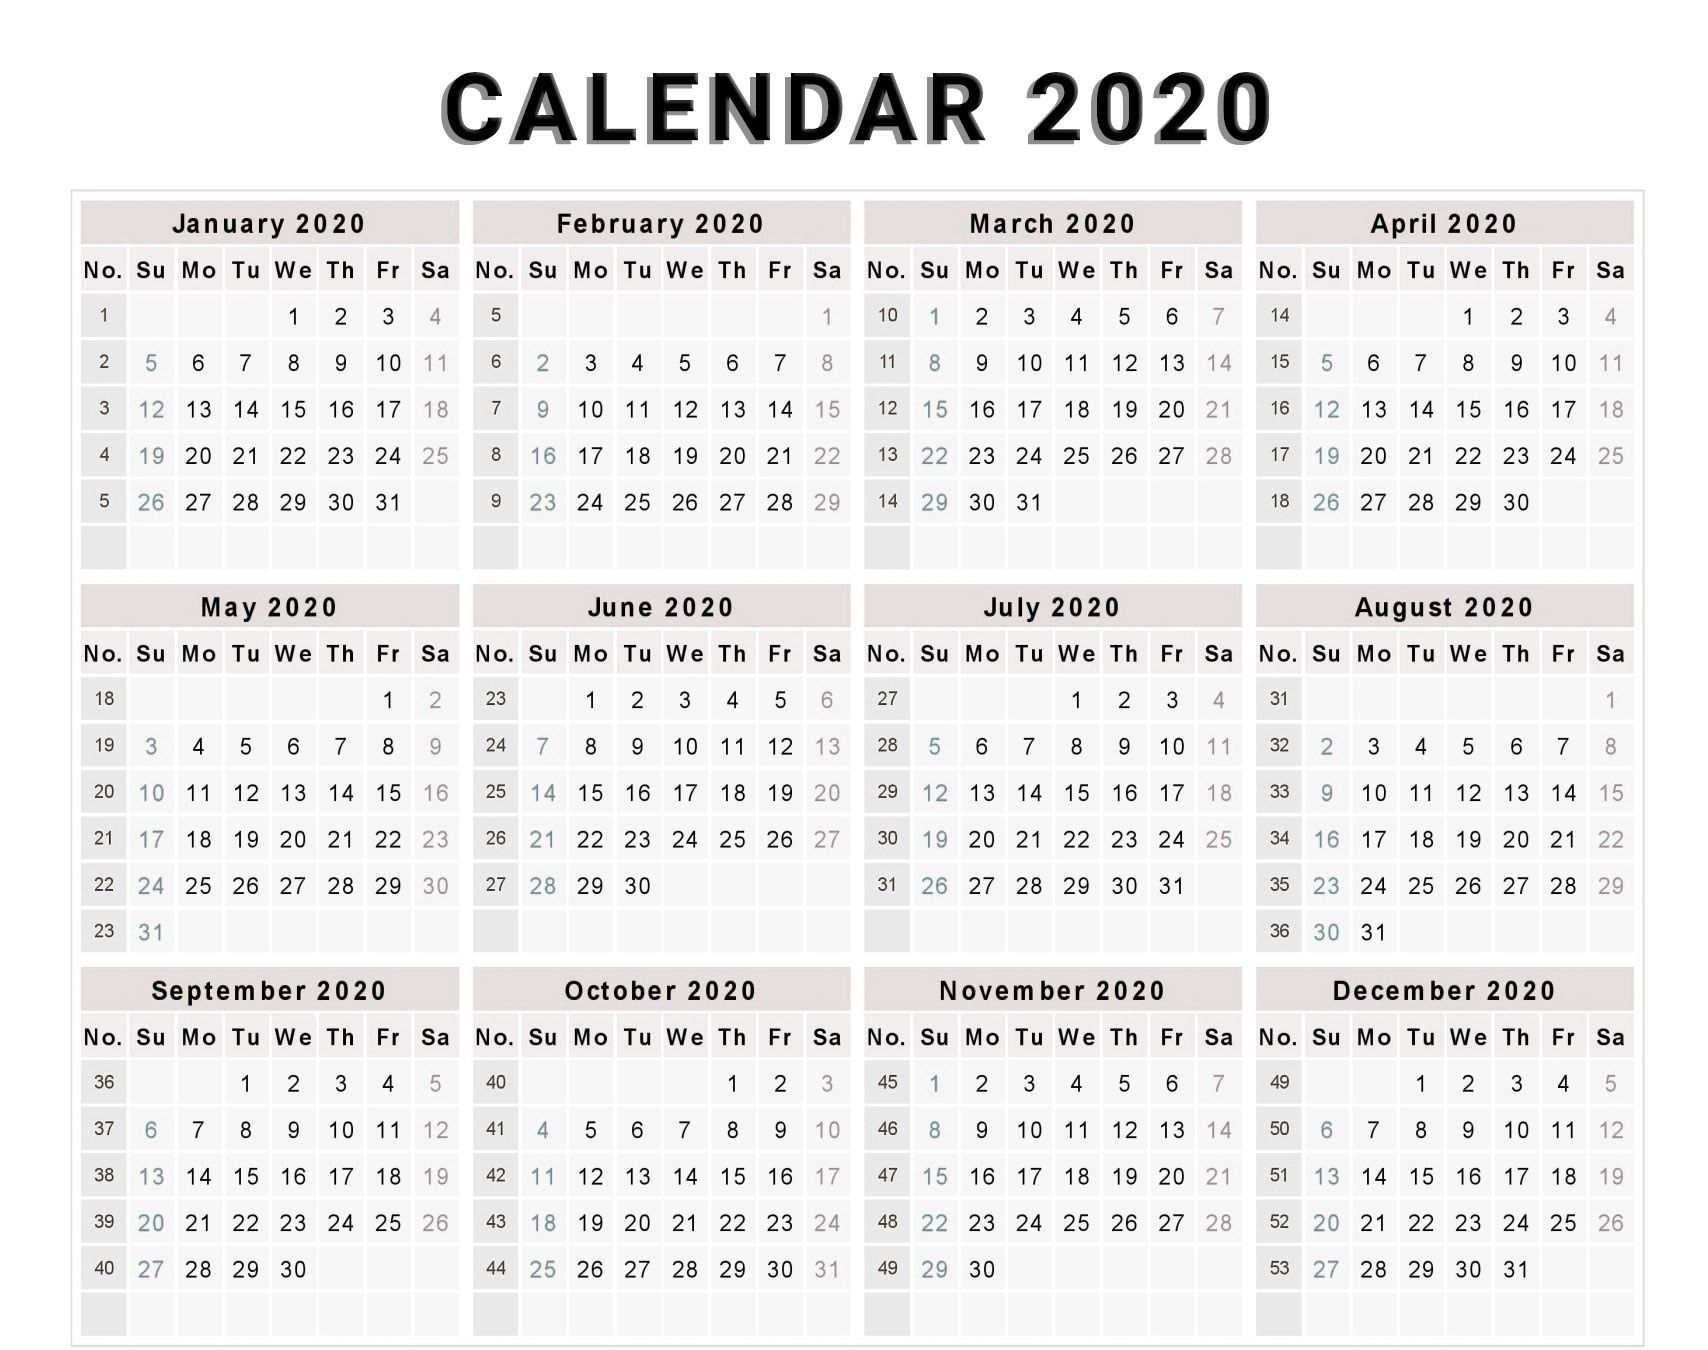 Calendar 2020 Free Template With Weeks | Monthly Calendar